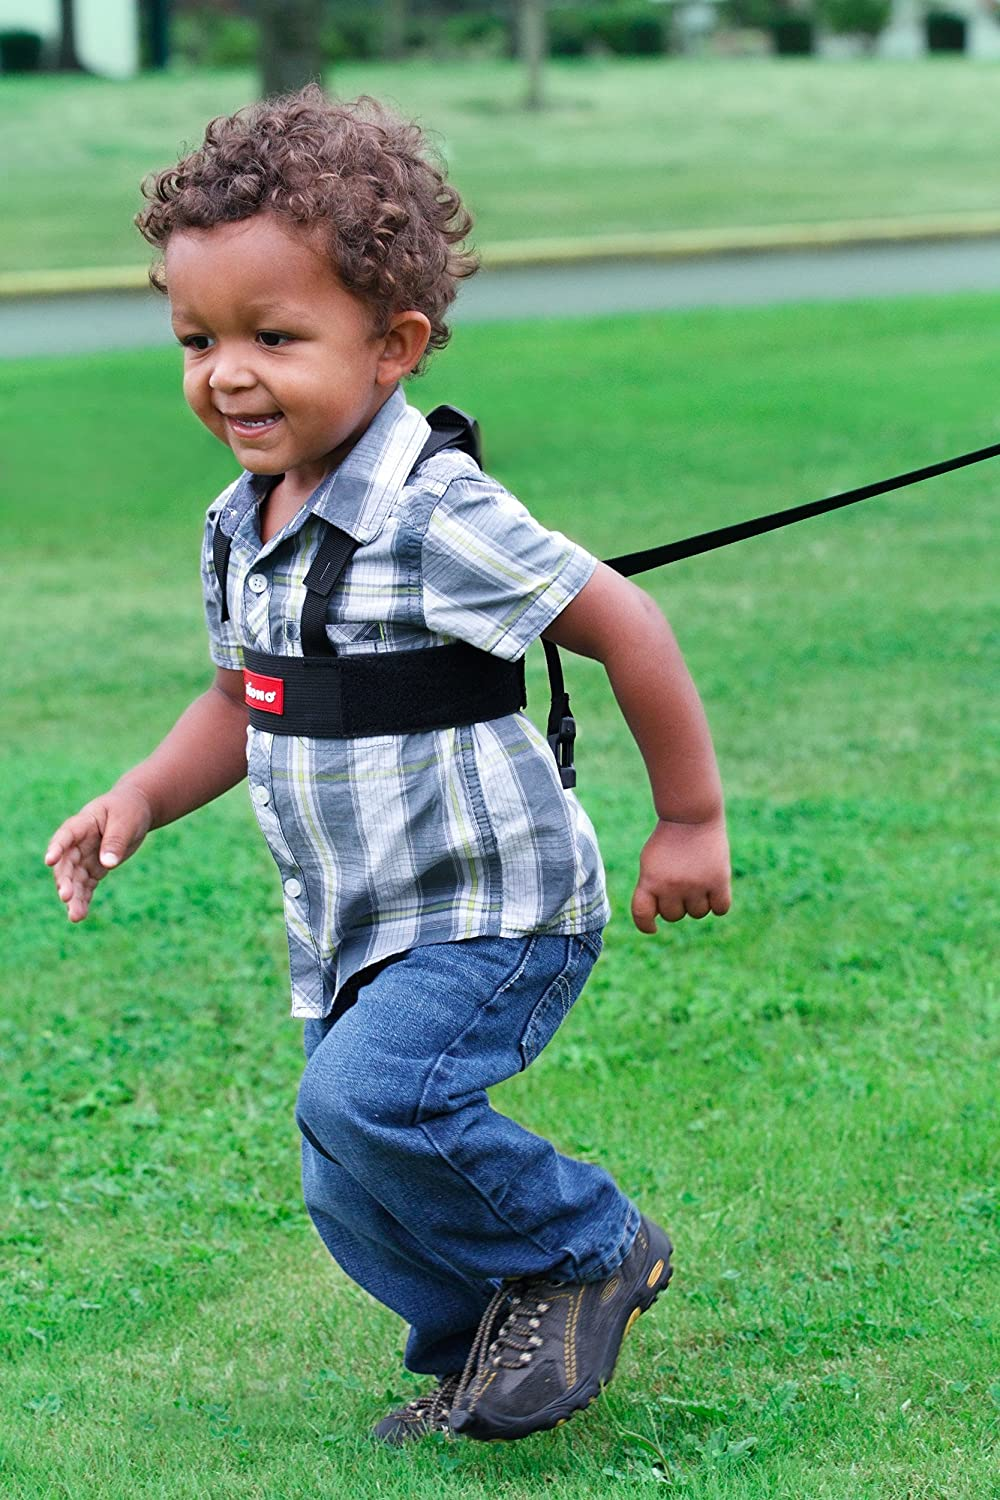 A child harness (alternative: child tether, child leash, British English: walking reins) is a safety device worn by children when walking with a parent or carer.